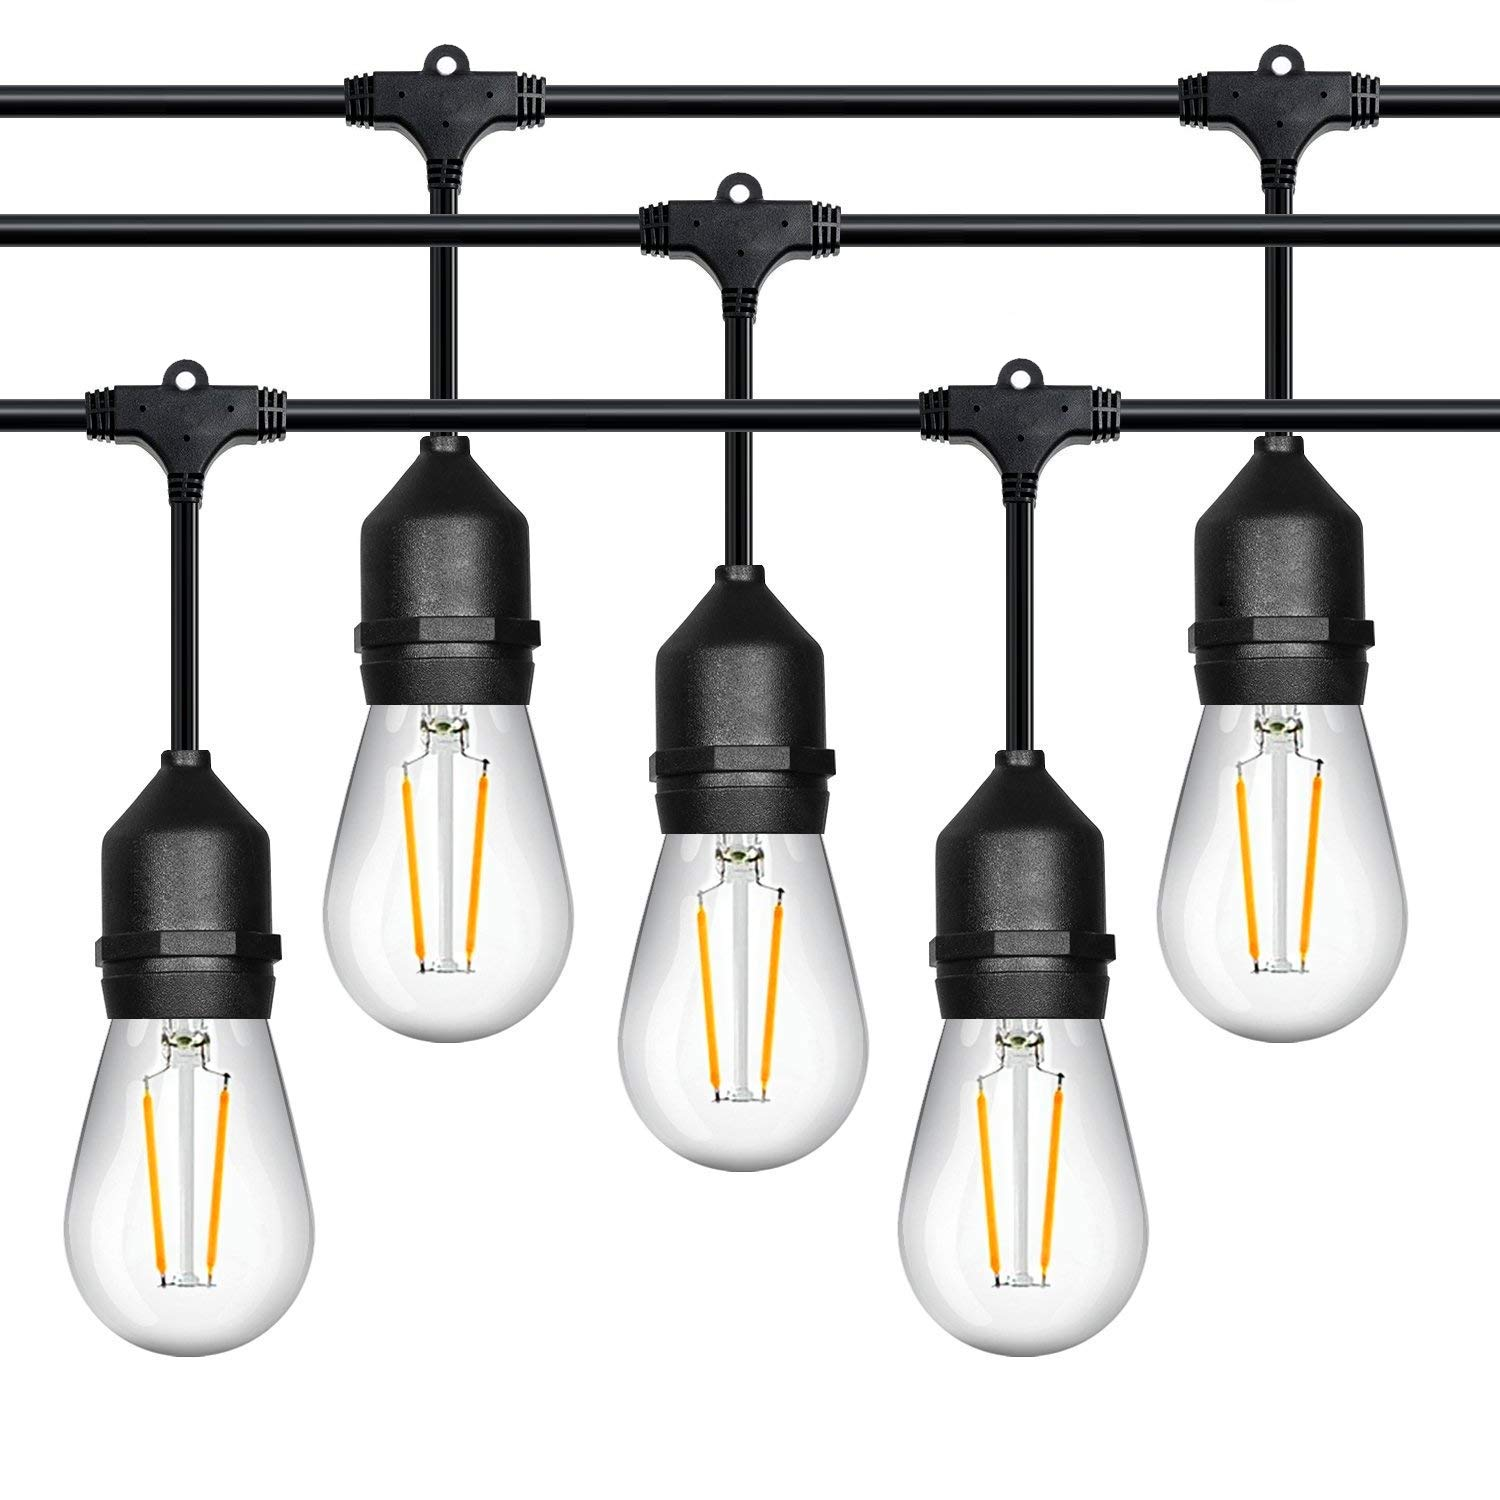 Outdoor String Lights LED Commercial Grade Outdoor Light Strand with Hanging Sockets Dimmable 2 Watt Bulbs 48 Ft Market Cafe Edison Vintage Bistro Weatherproof Strand for Porch Patio Garden Blk